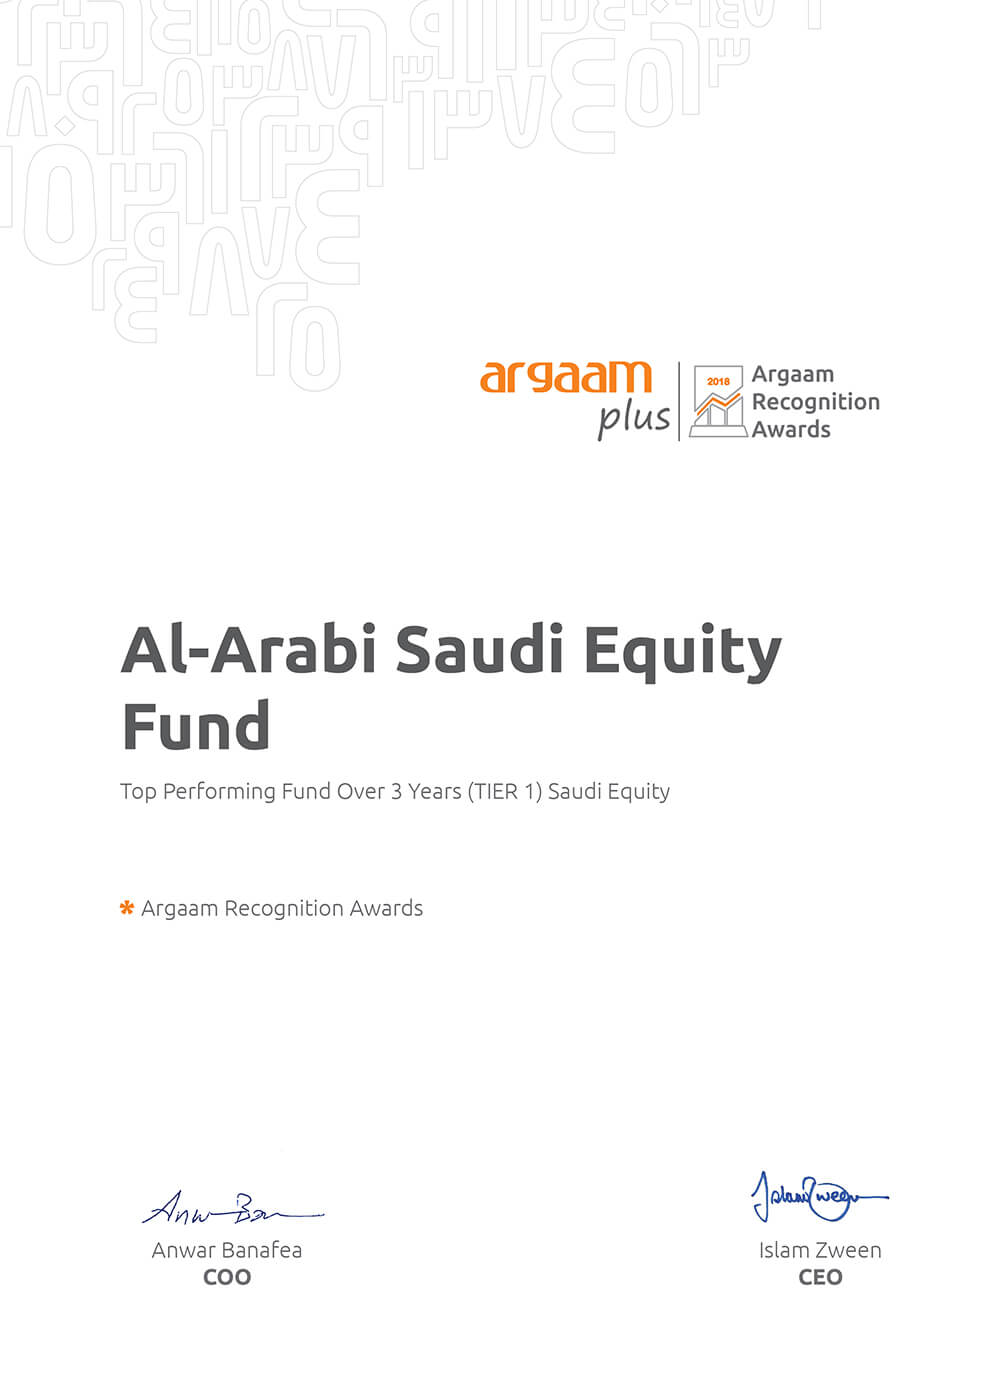 top-performing-fund-over-3-years-tier-1-saudi-equity